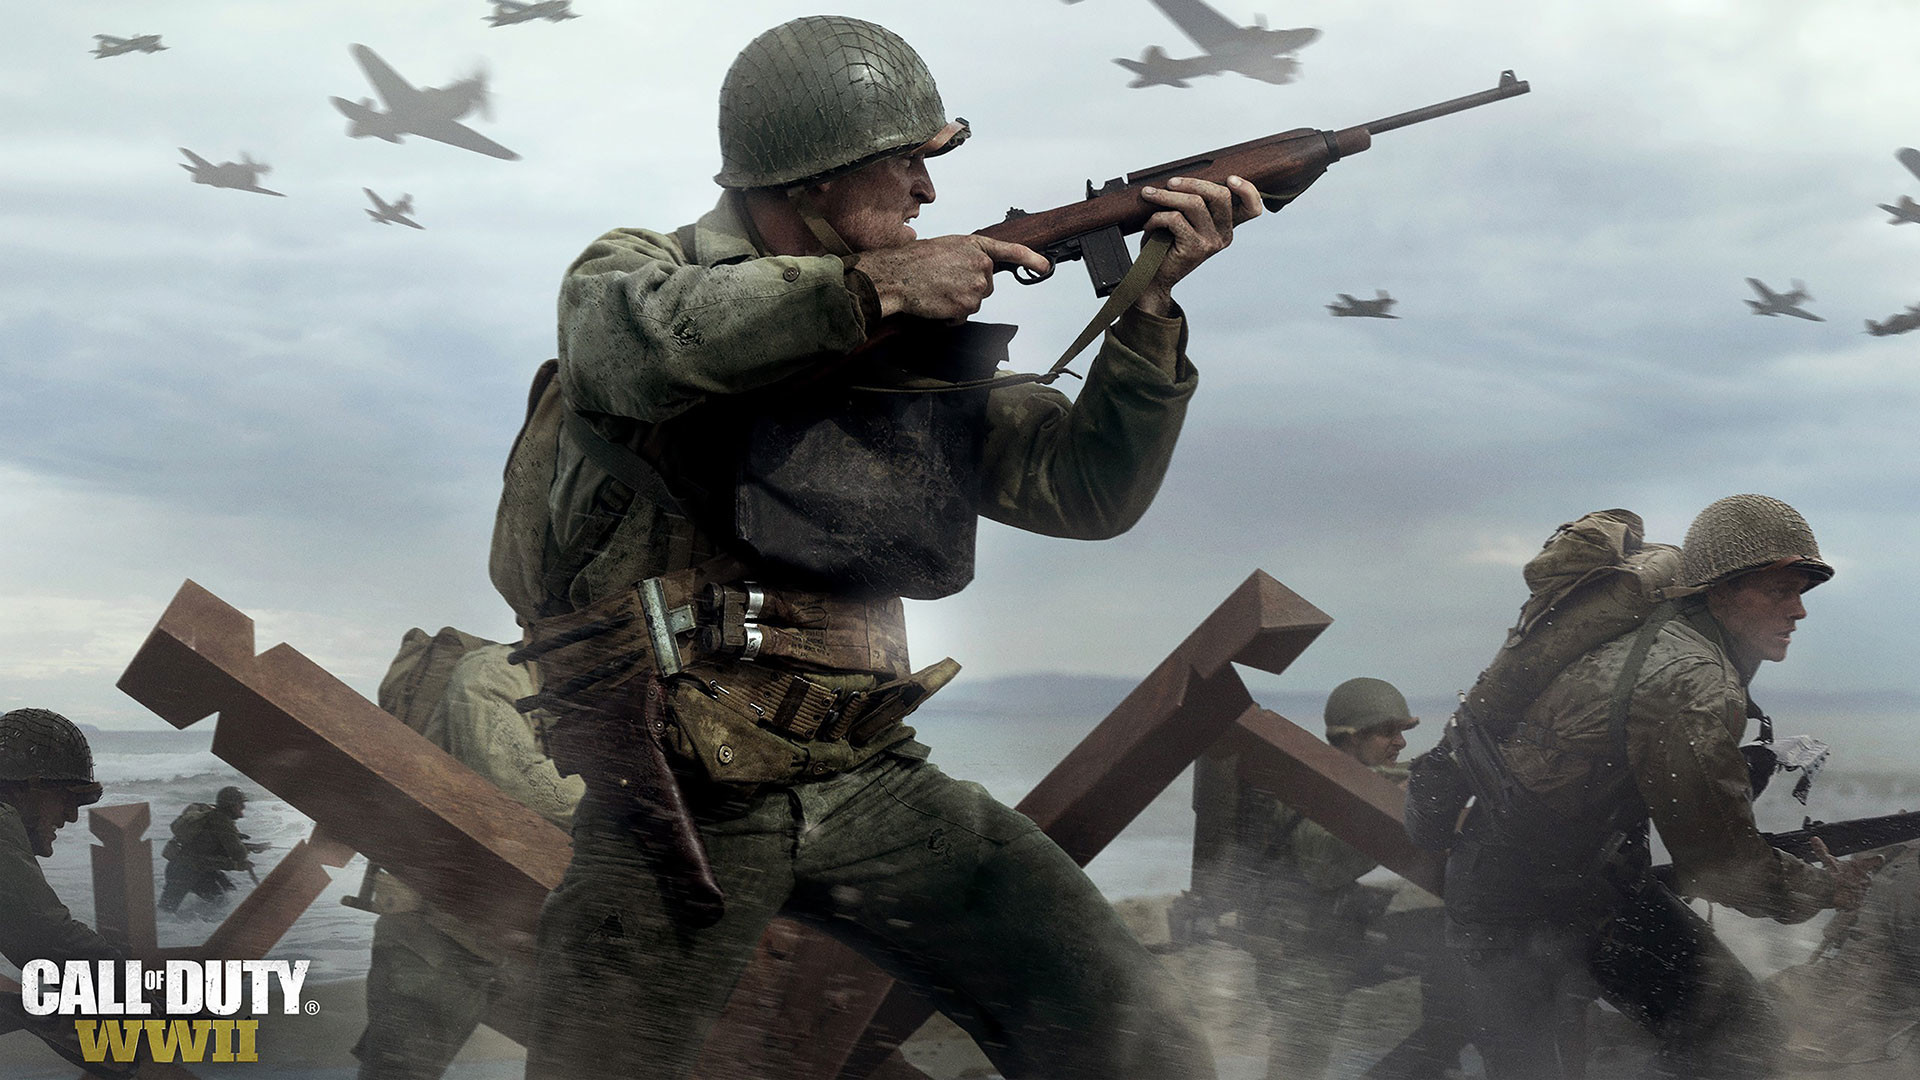 … CALL OF DUTY WWII 720p Wallpaper